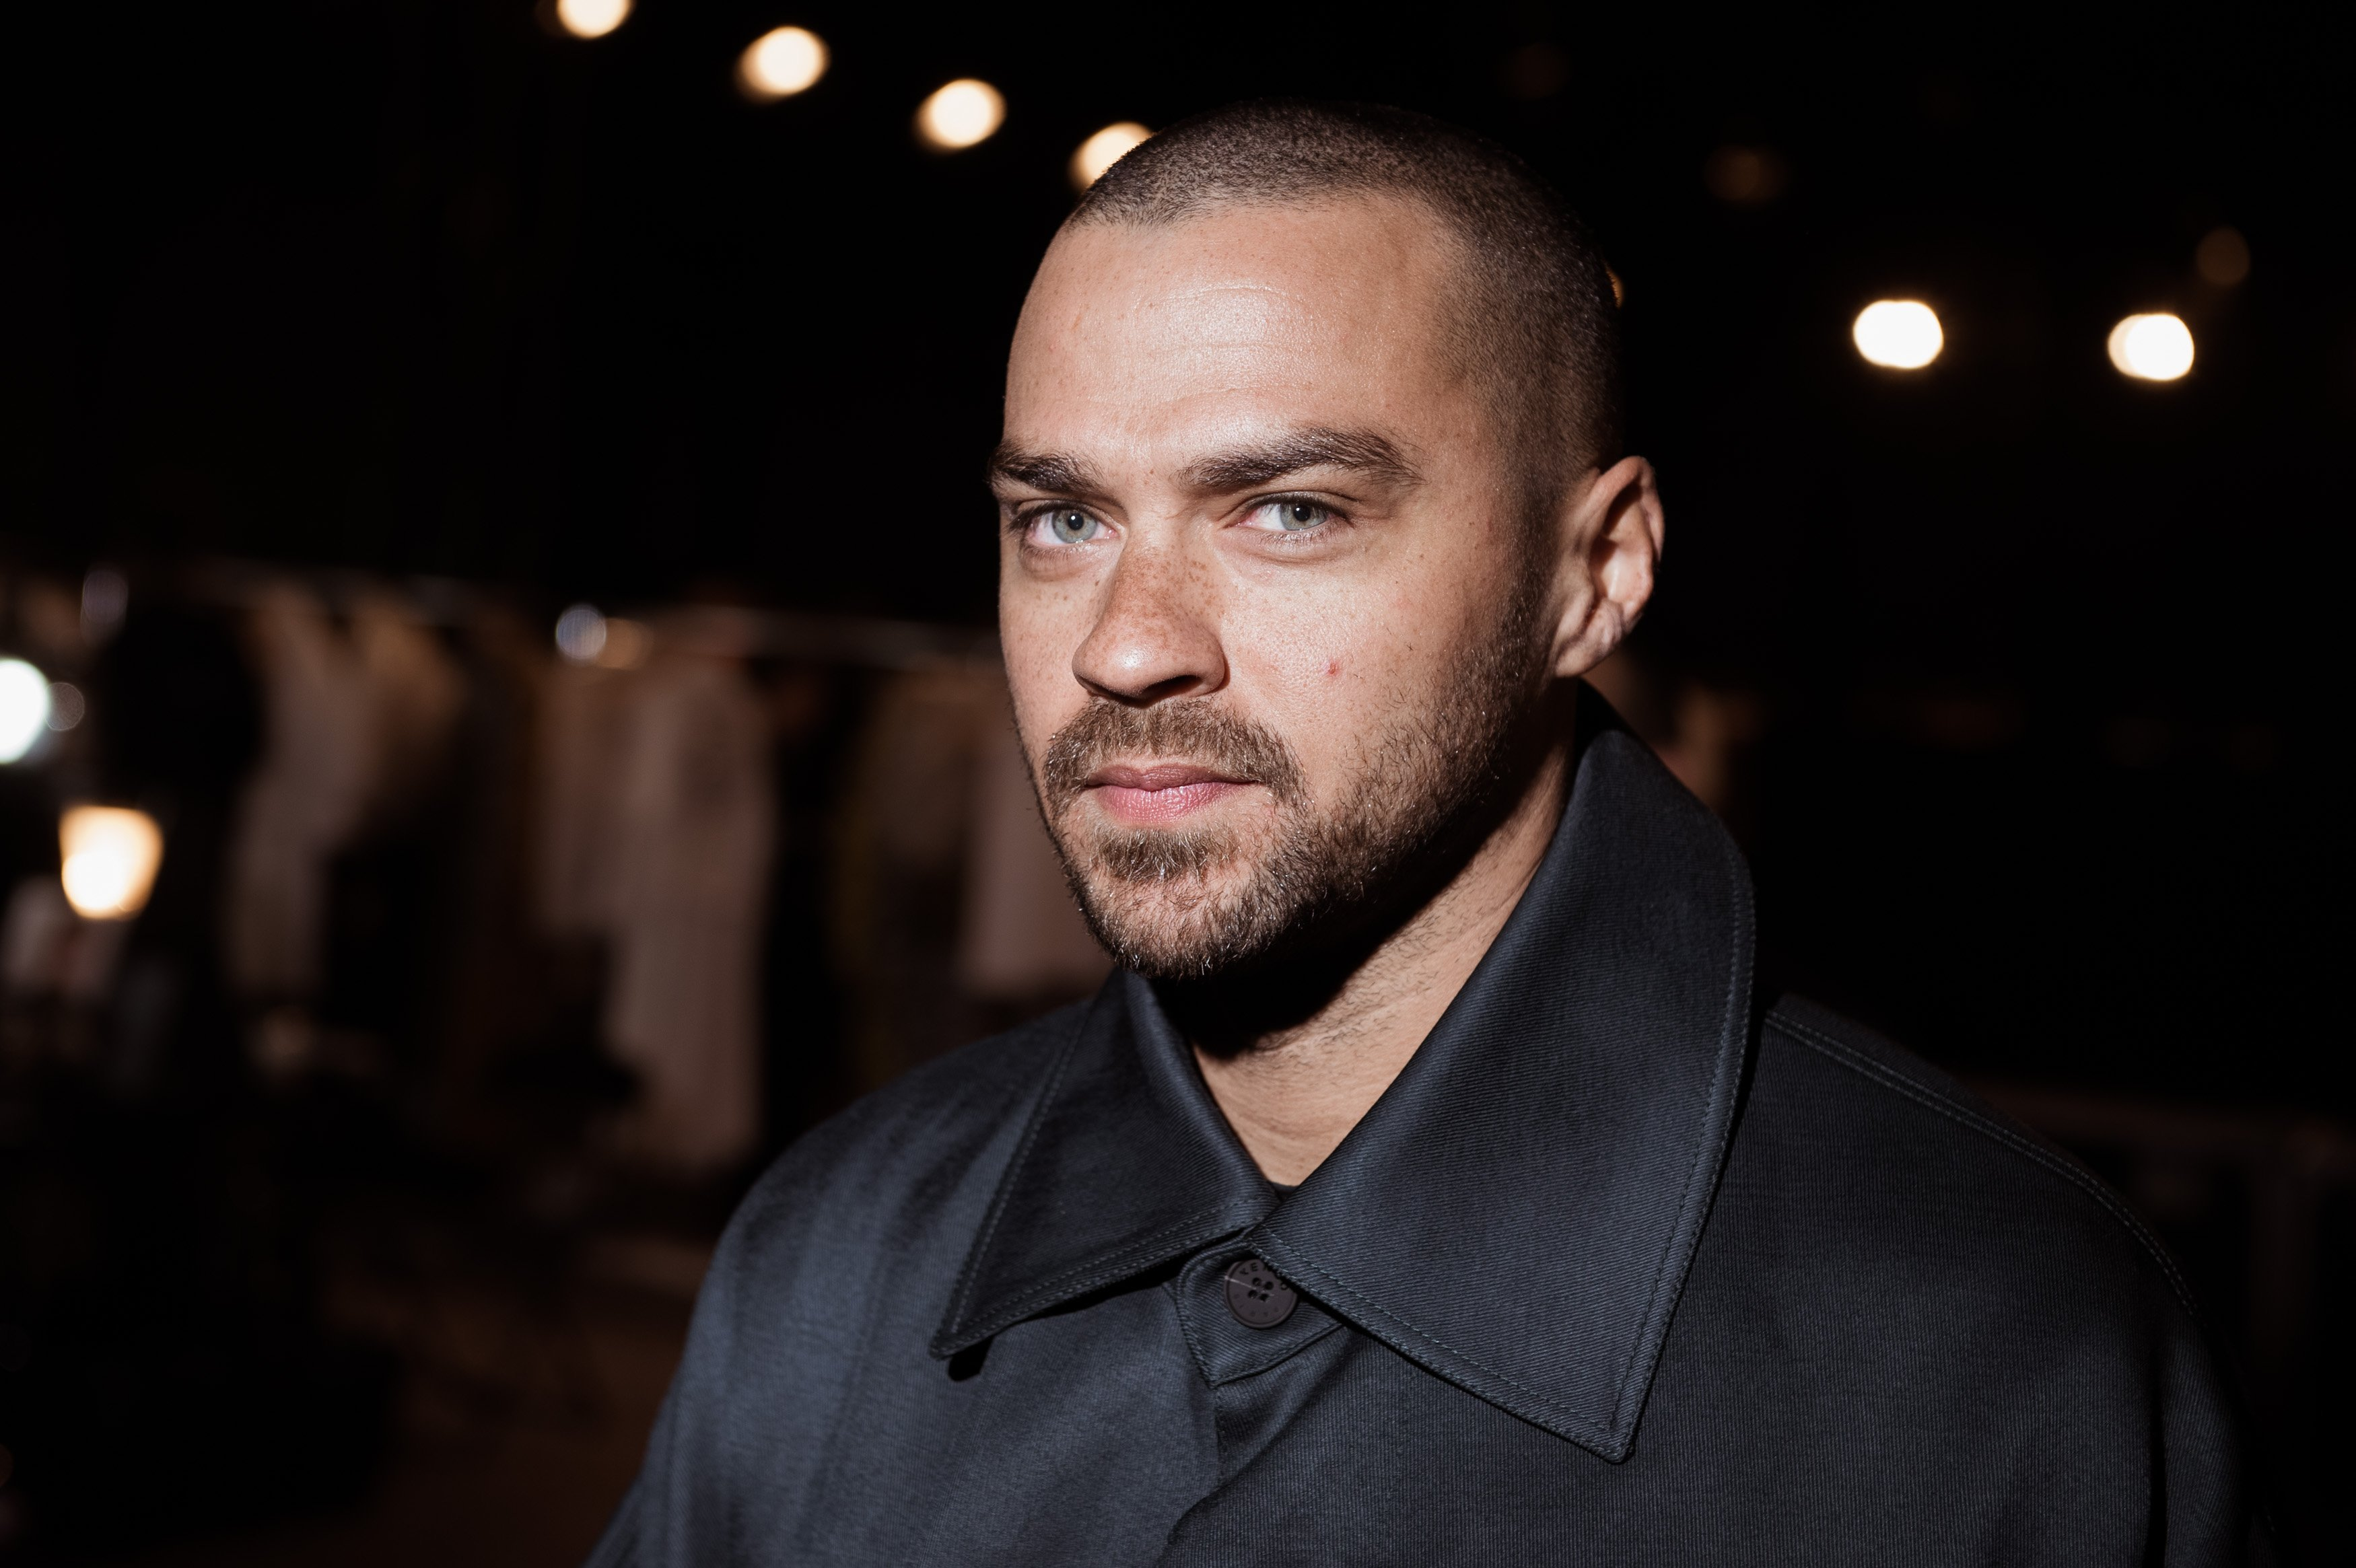 Jesse Williams at a Paris Fashion Week Show in France on Jan. 22, 2017 | Source: Getty Images